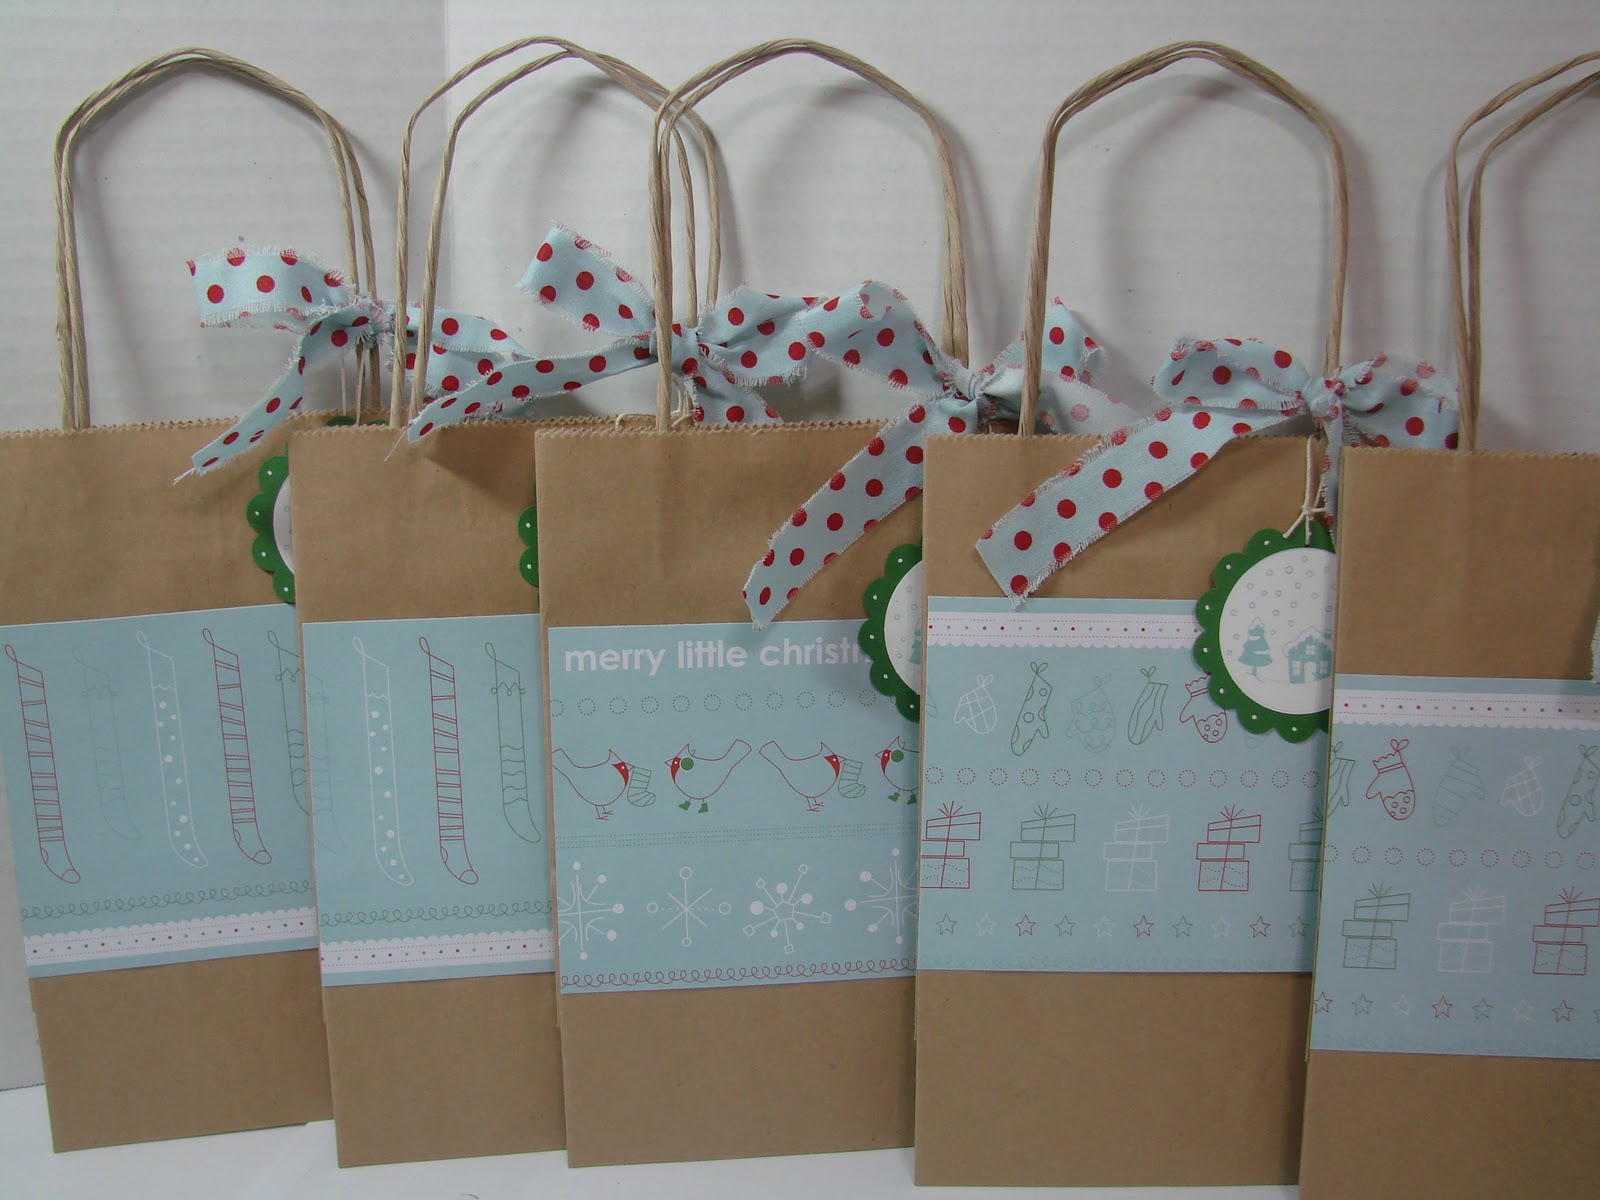 Craft haven retreats a candy cane christmas is coming